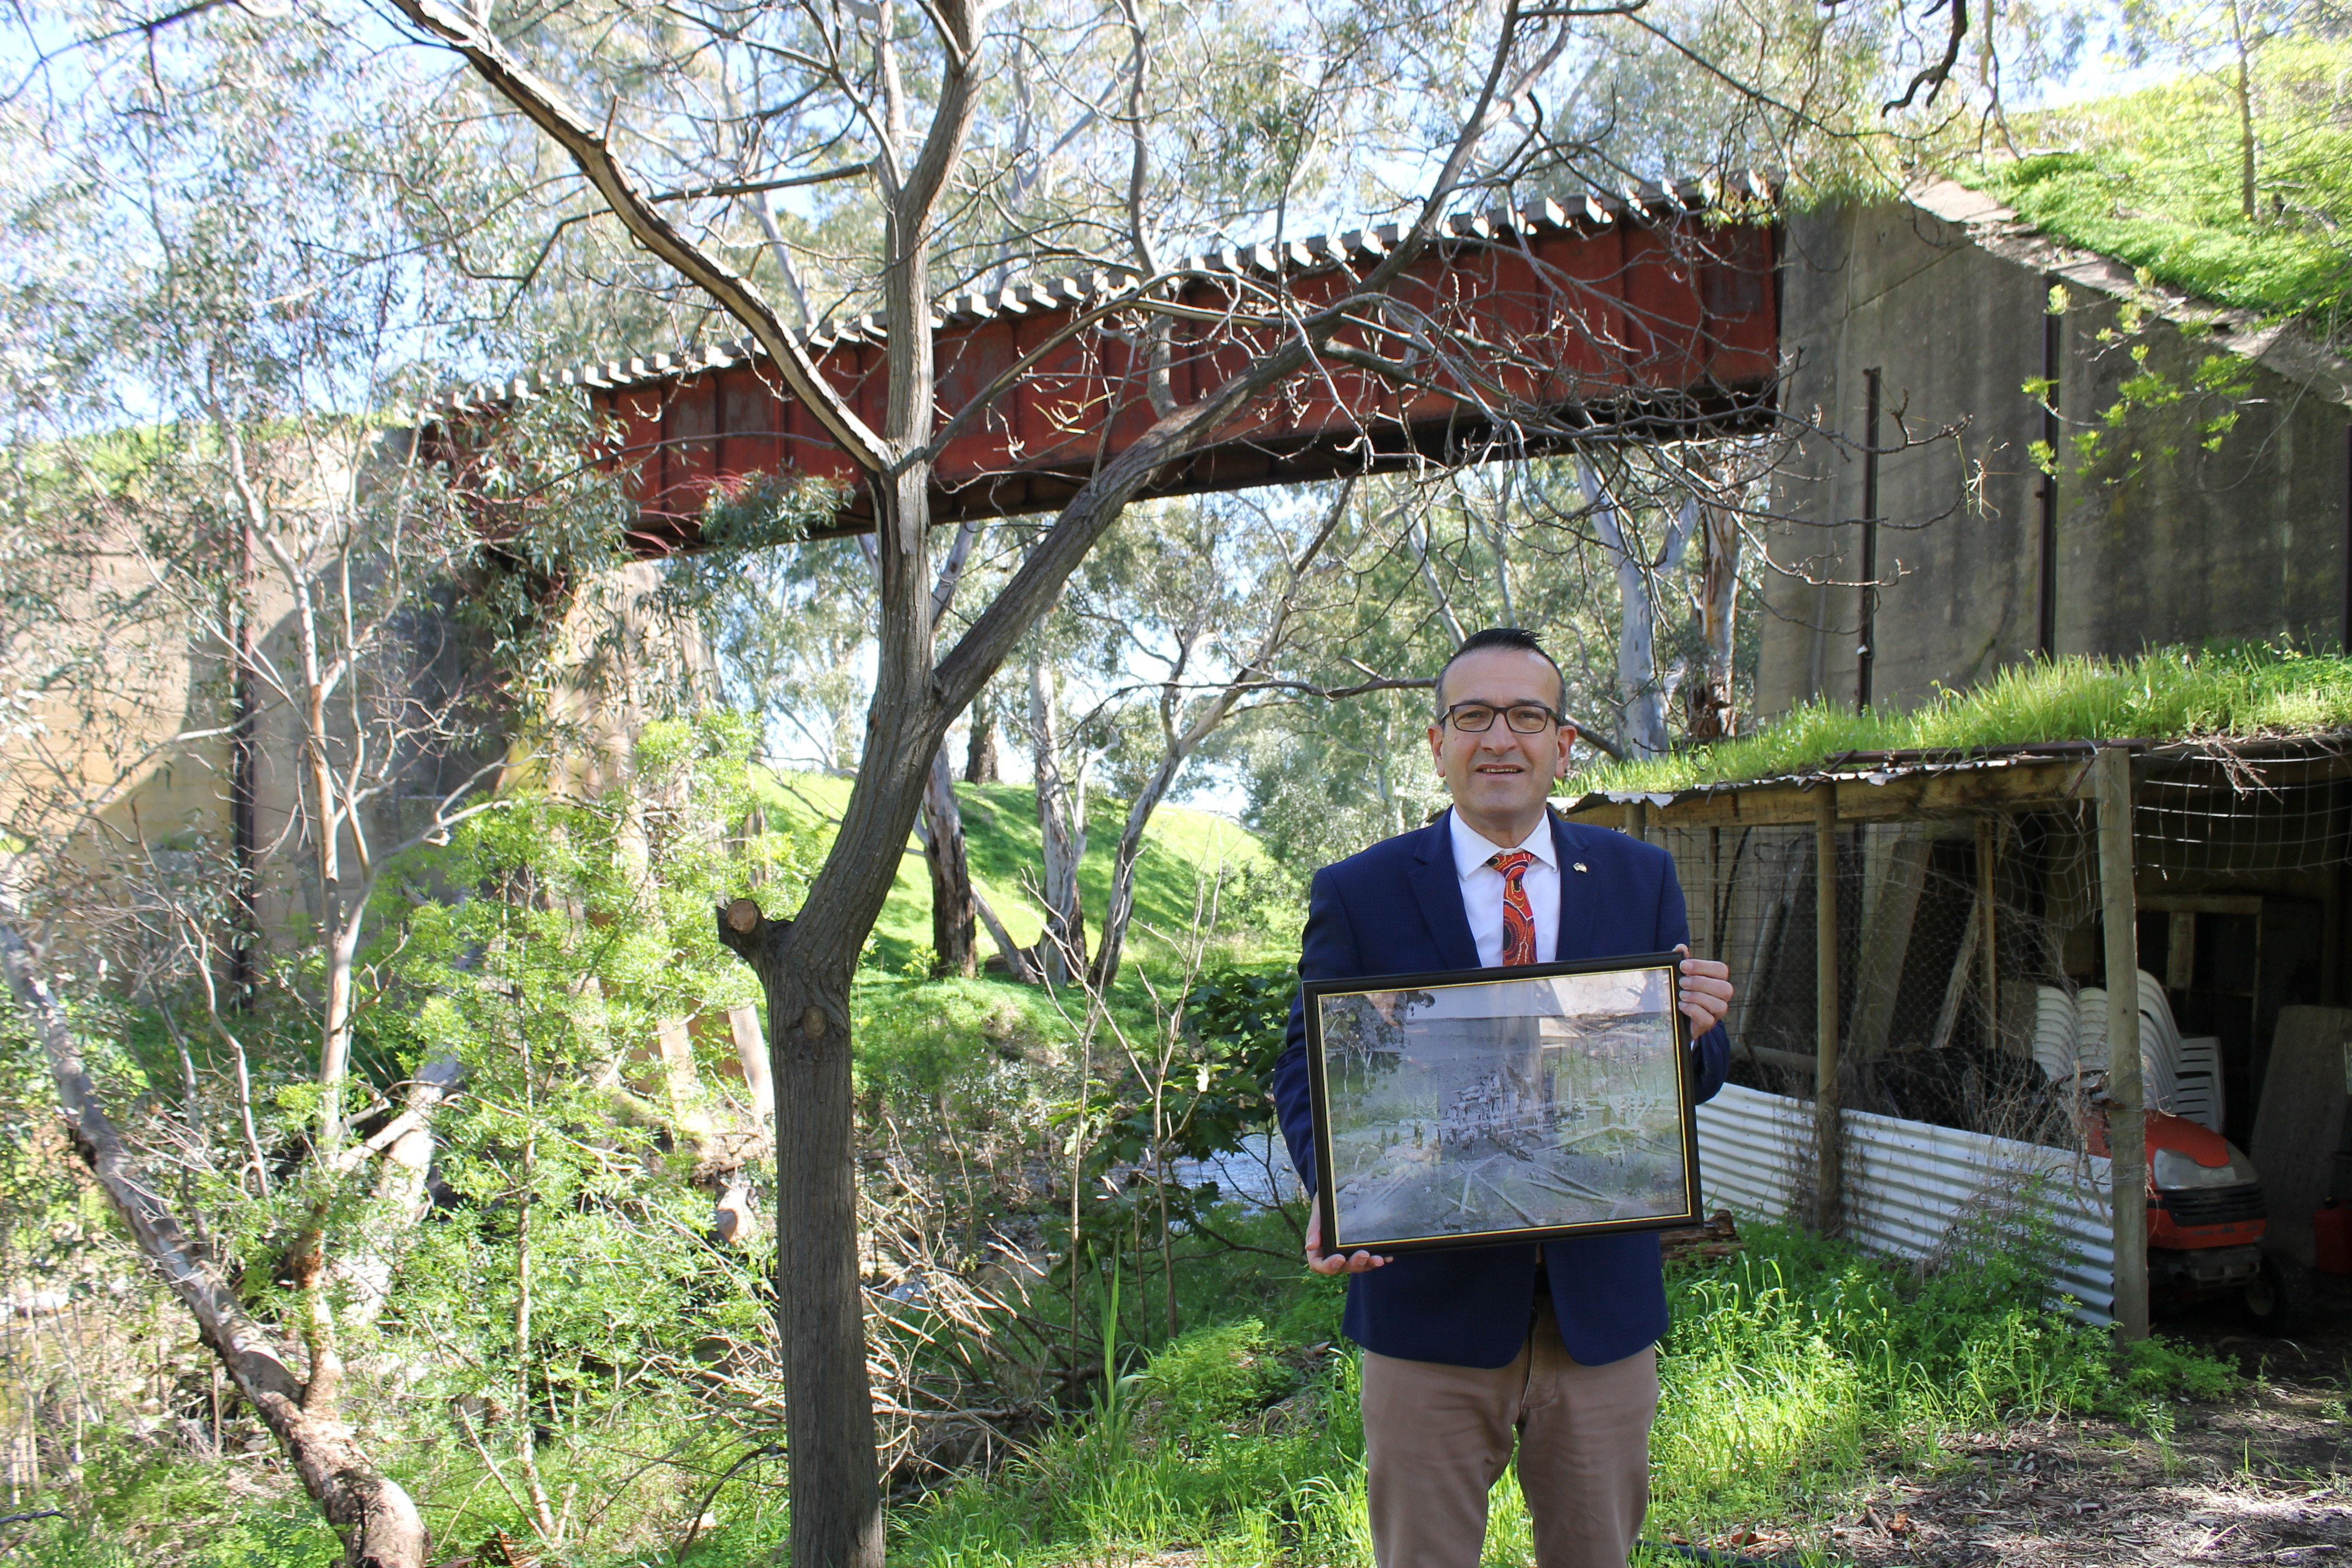 Tony Piccolo at the Jacob's Creek railway bridge with the photo taken during the original construction, which is part of the rail history exhibitions